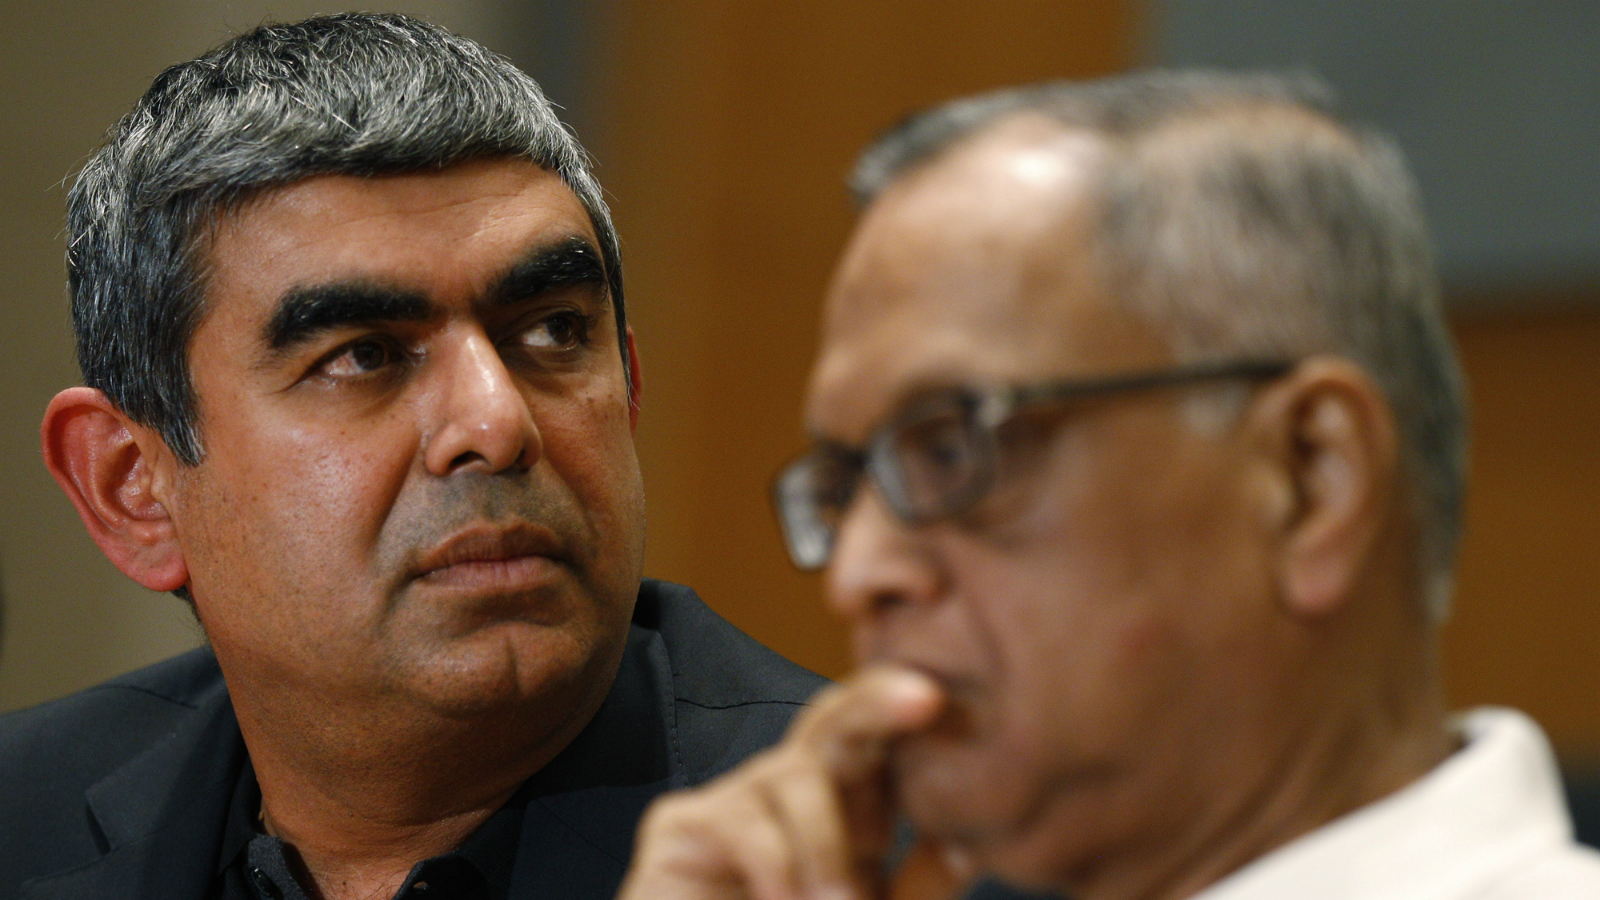 "Infosys new Chief Executive Officer and Managing Director designate Vishal Sikka, left, and Chairman N.R. Narayana Murthy listen to a question during a press conference at the company's headquarters in Bangalore, India, Thursday, June 12, 2014. Sikka said Thursday he felt honored to lead India's second-largest technology outsourcer and was looking forward to working with ""talented Infoscions"" around the world. ()"